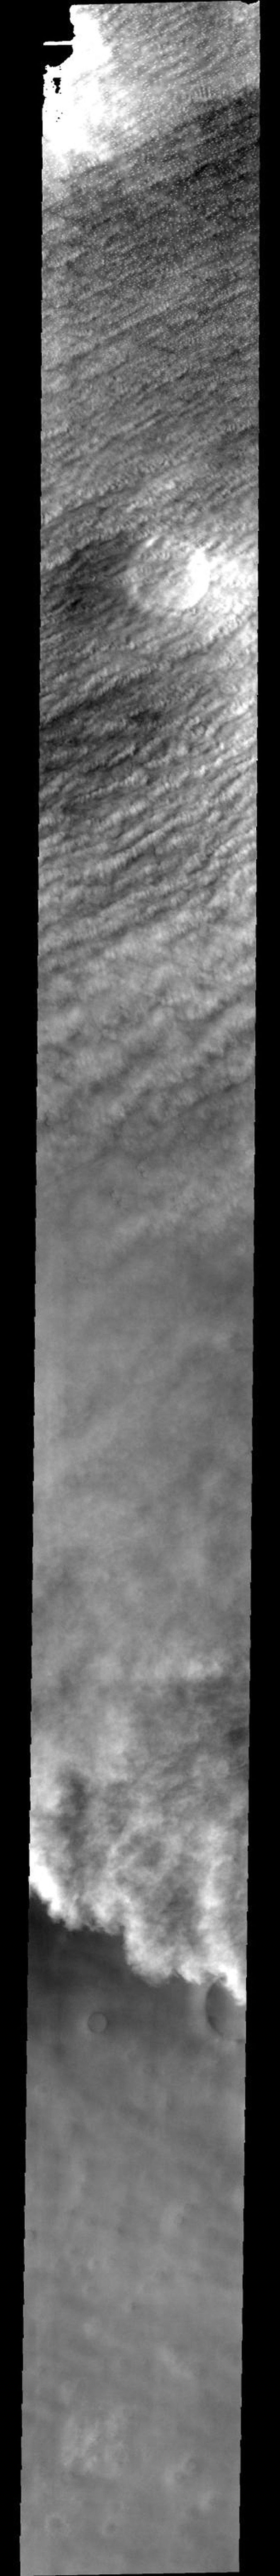 This image released on Nov 1, 2004 from NASA's 2001 Mars Odyssey shows clouds and one of the many storm fronts common in the north polar region during spring and early summer on Mars' polar cap.